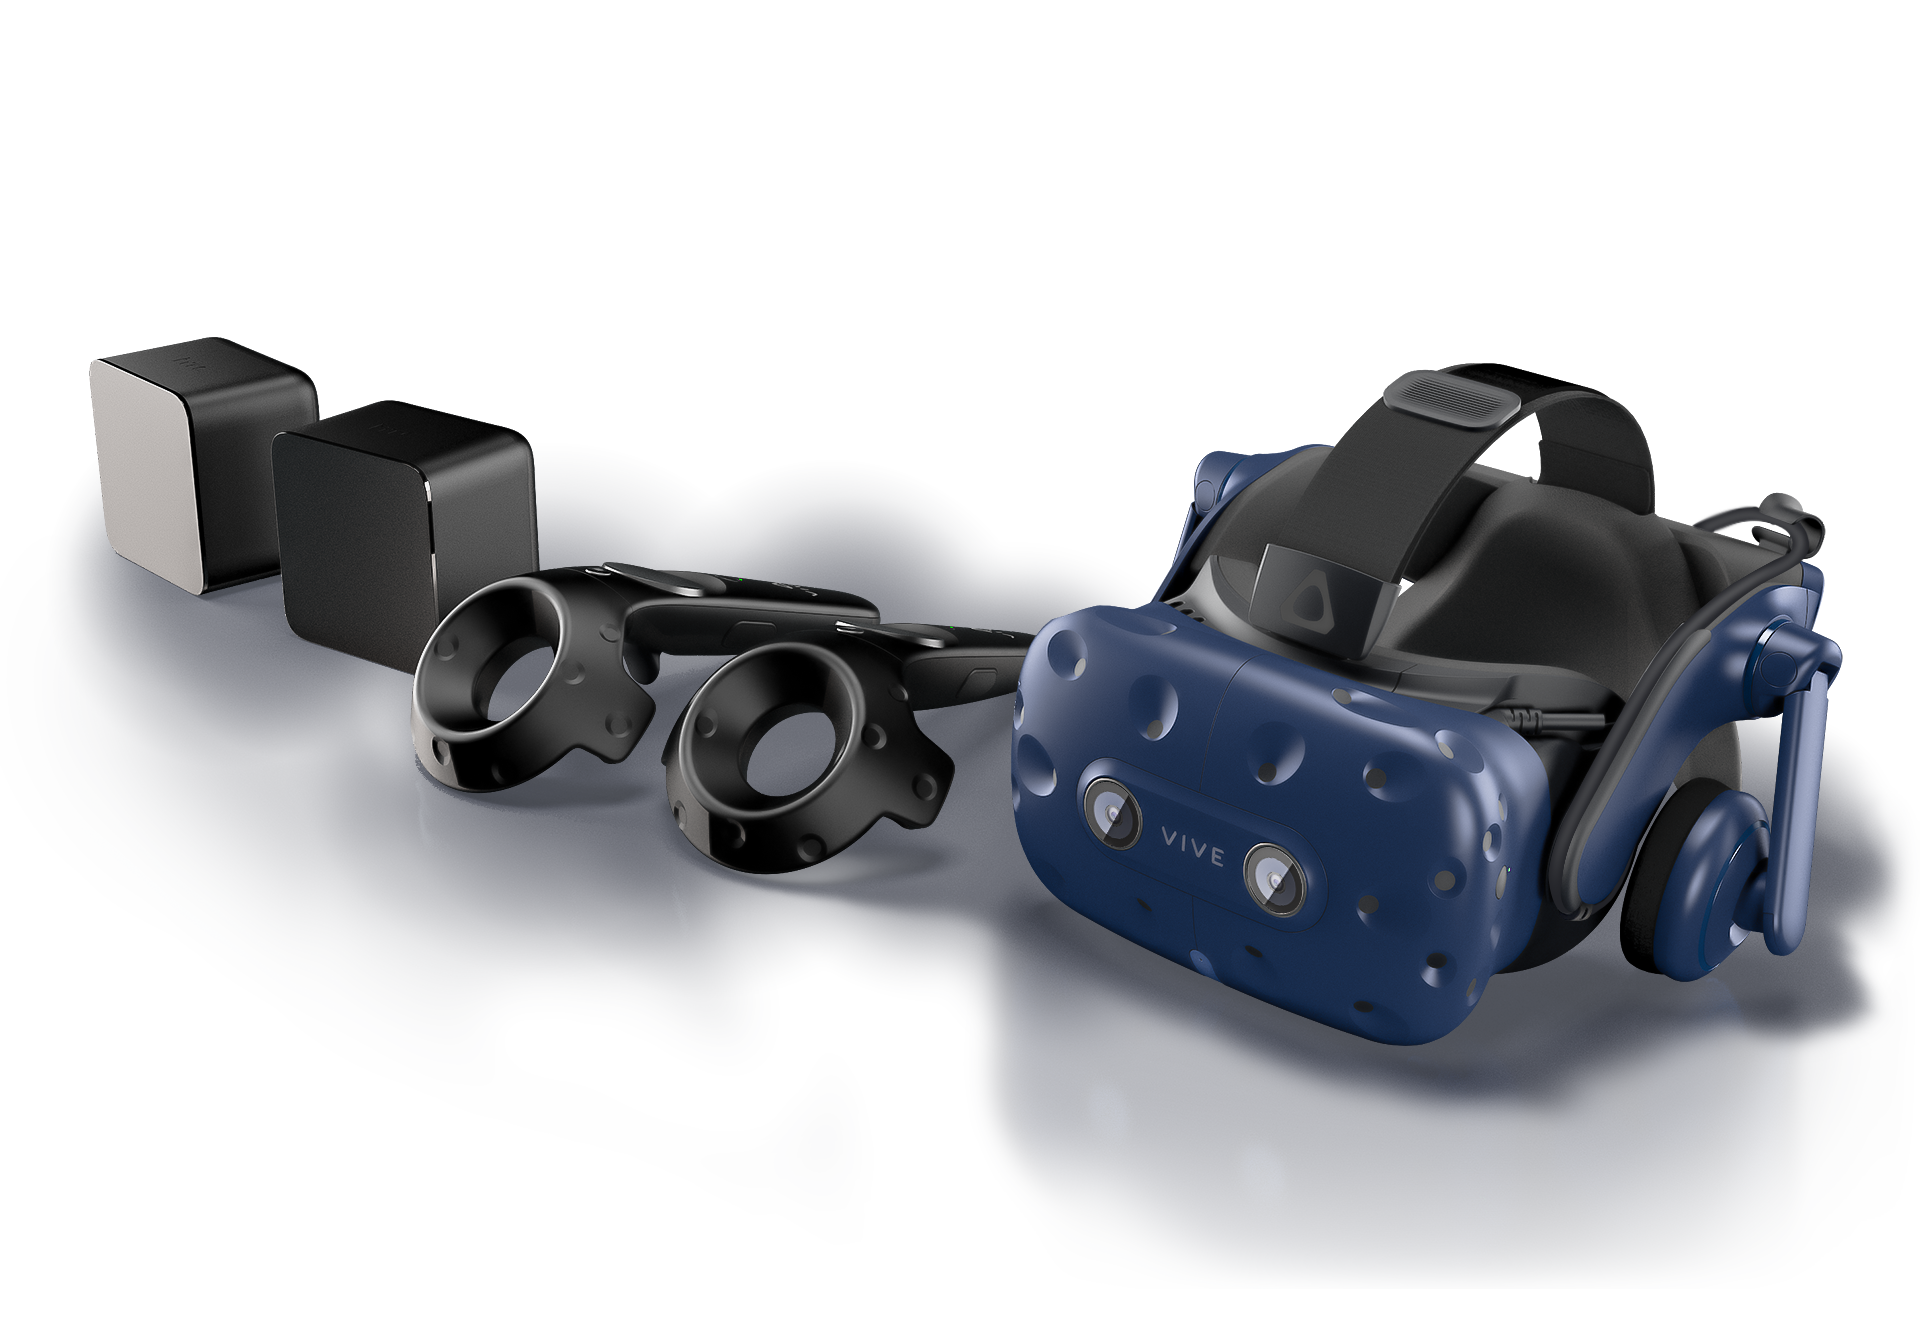 vive pro starter kit the professional grade vr headset